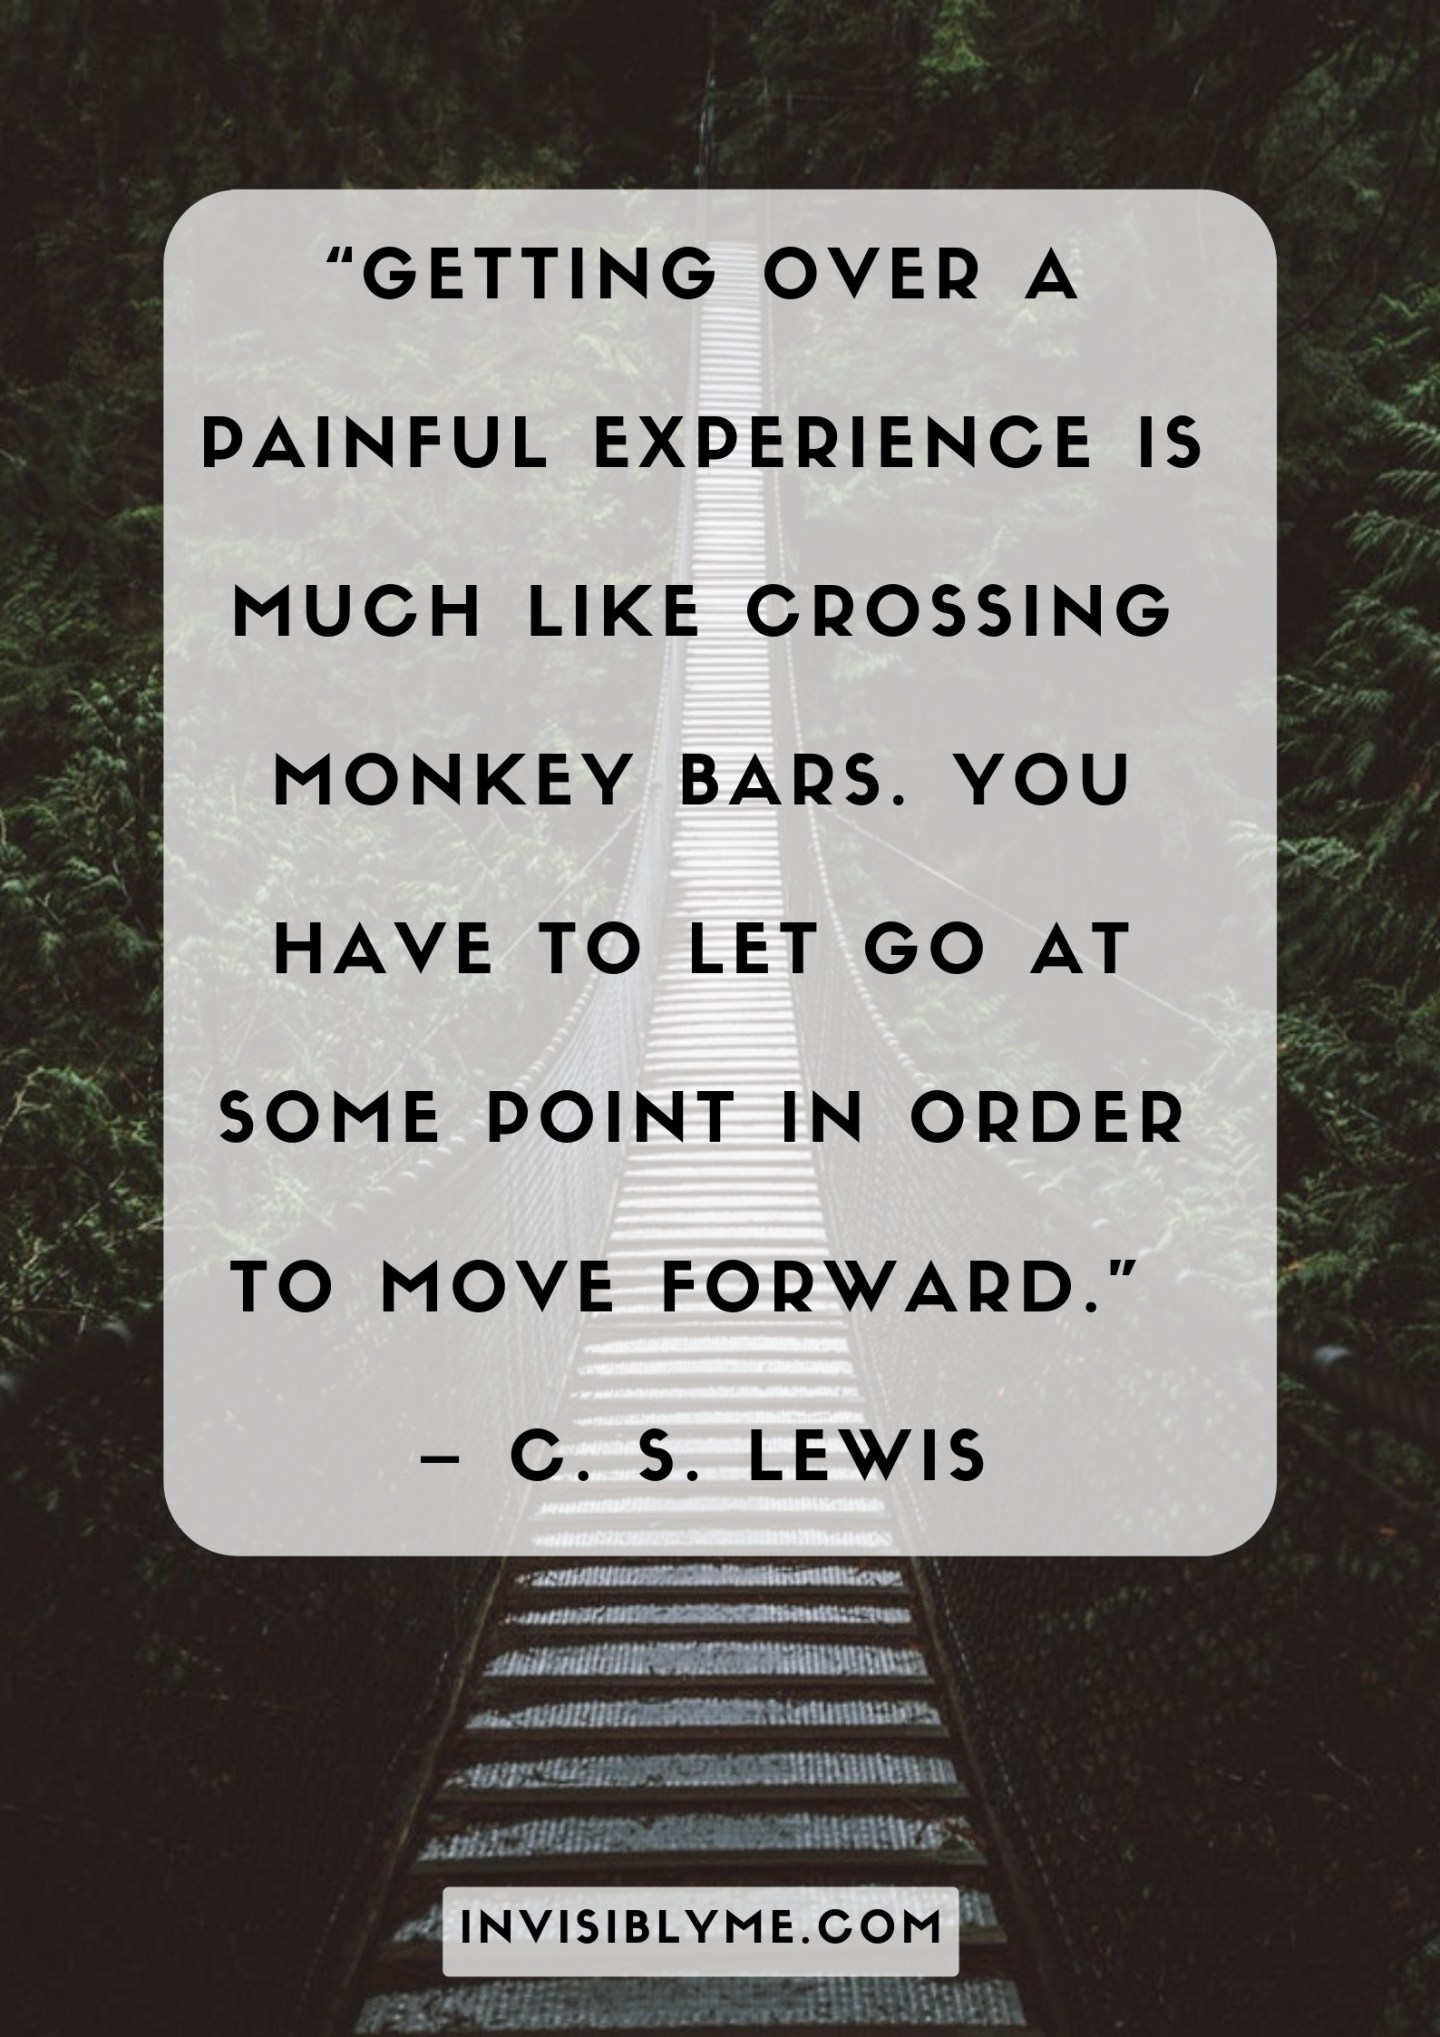 """Getting over a painful experience is much like crossing monkey bars. You have to let go at some point in order to move forward"" Quote by C.S. Lewis."